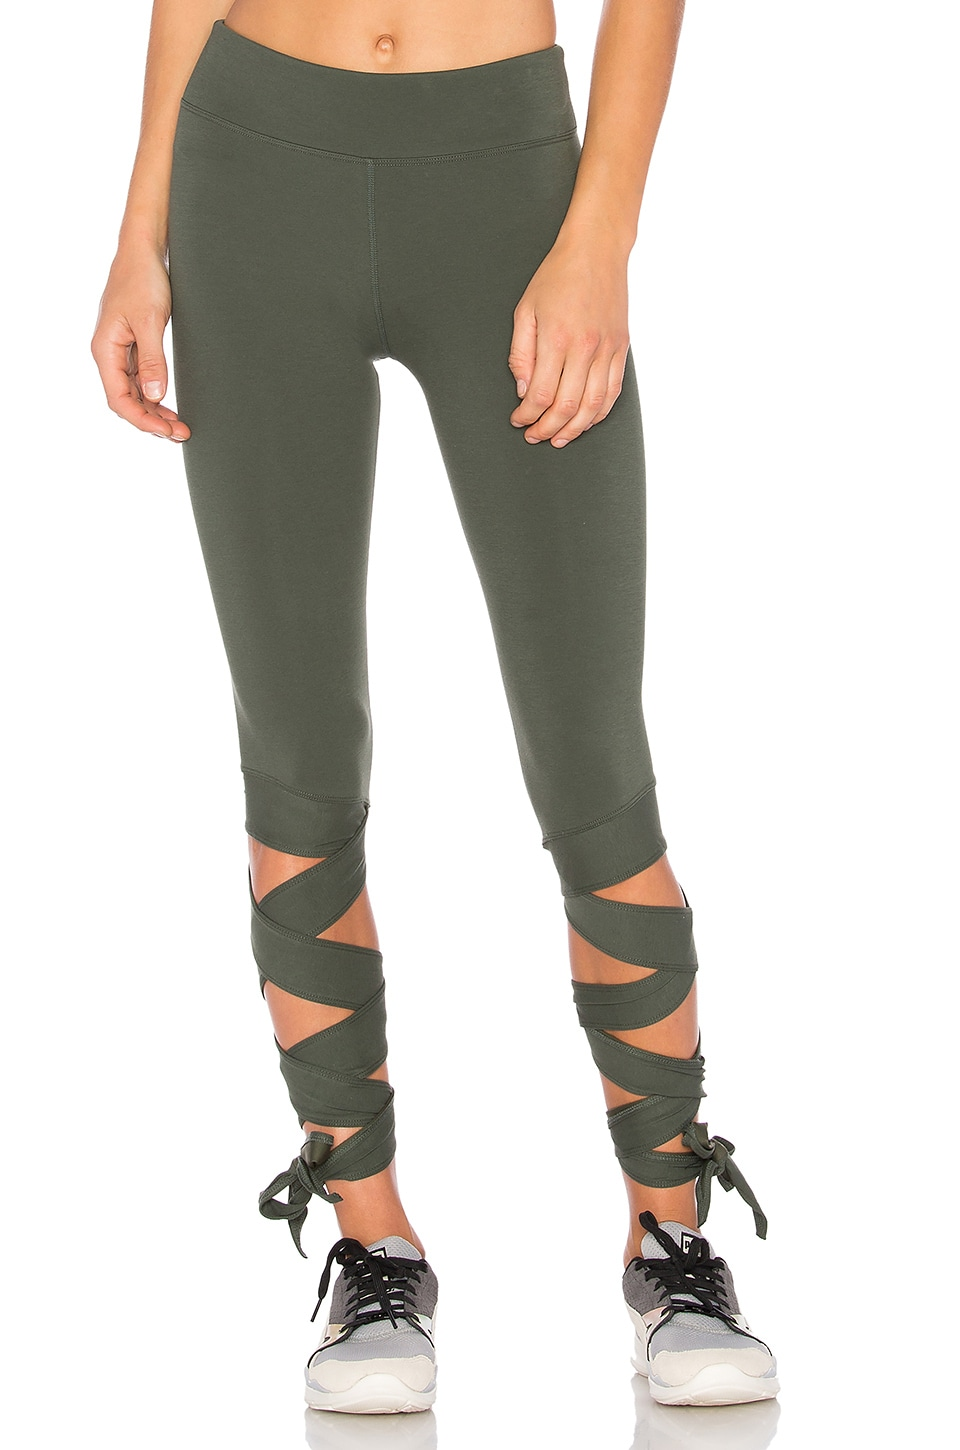 Motion Legging by Free People